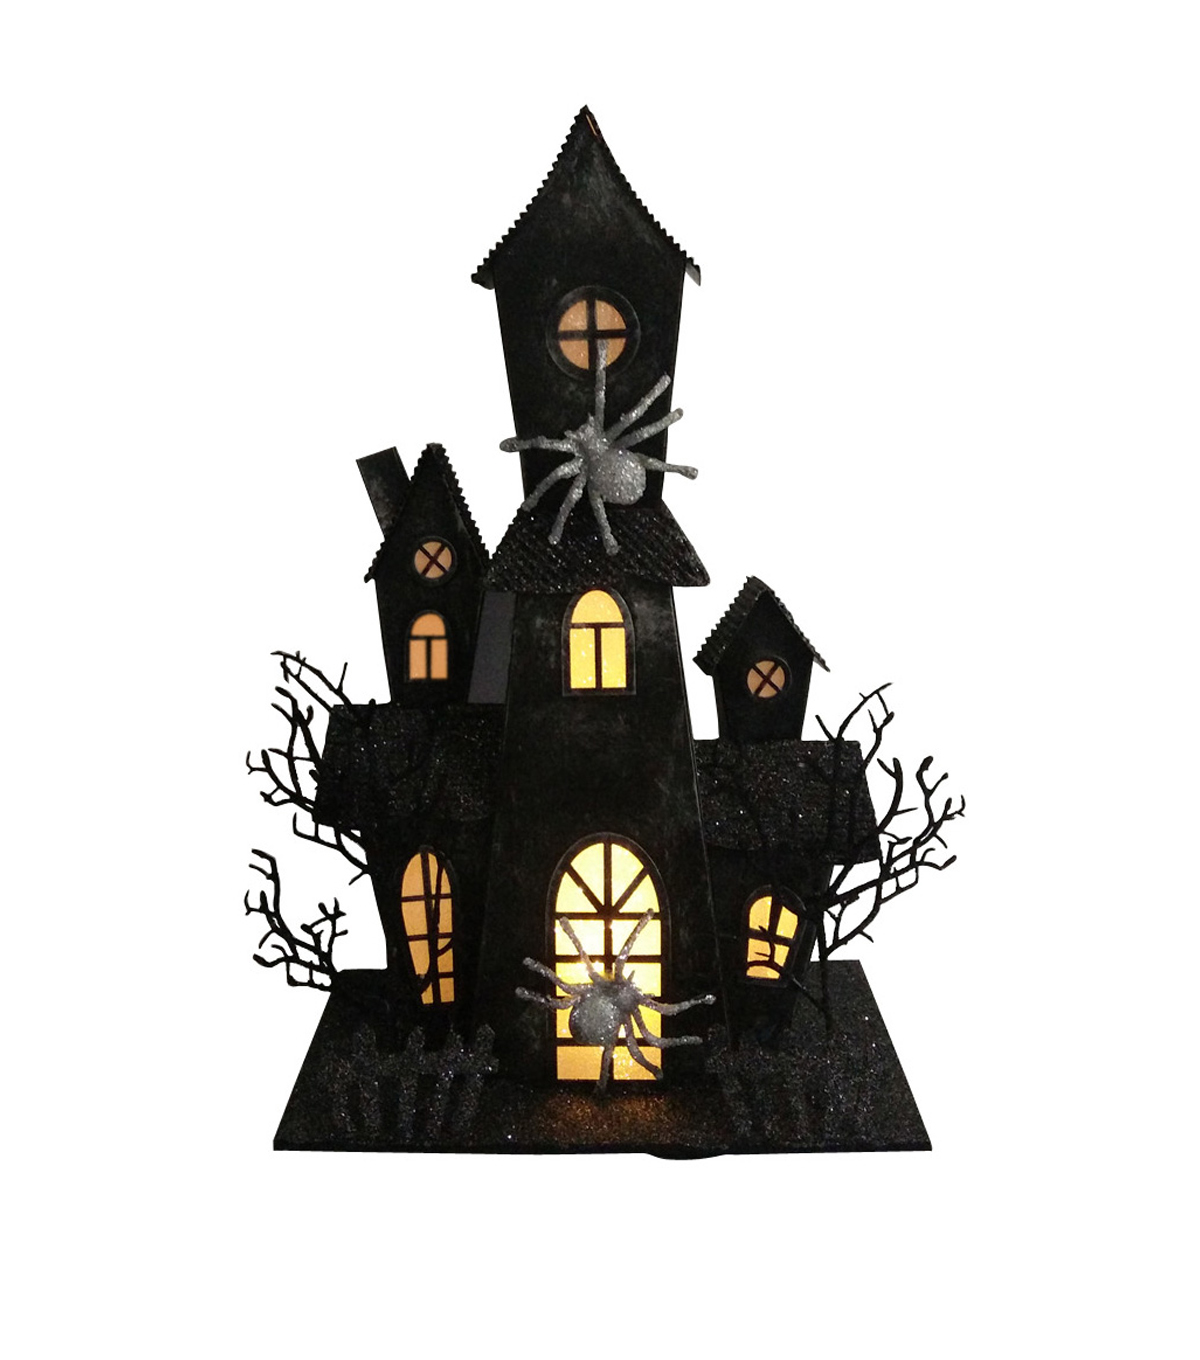 Maker's Halloween Haunted House with LED-Black | JOANN on haunted house design plans, cat room design ideas, haunted house kitchen, red room design ideas, haunted house bathroom, football room design ideas, crafts room design ideas, haunted house foyer, pool room design ideas, haunted house maze floor plan, western room design ideas, space room design ideas, basketball room design ideas, haunted house wall coverings, haunted house furniture, haunted house interior design, emergency room design ideas, haunted house restaurants, haunted house bedroom, haunted house basement,